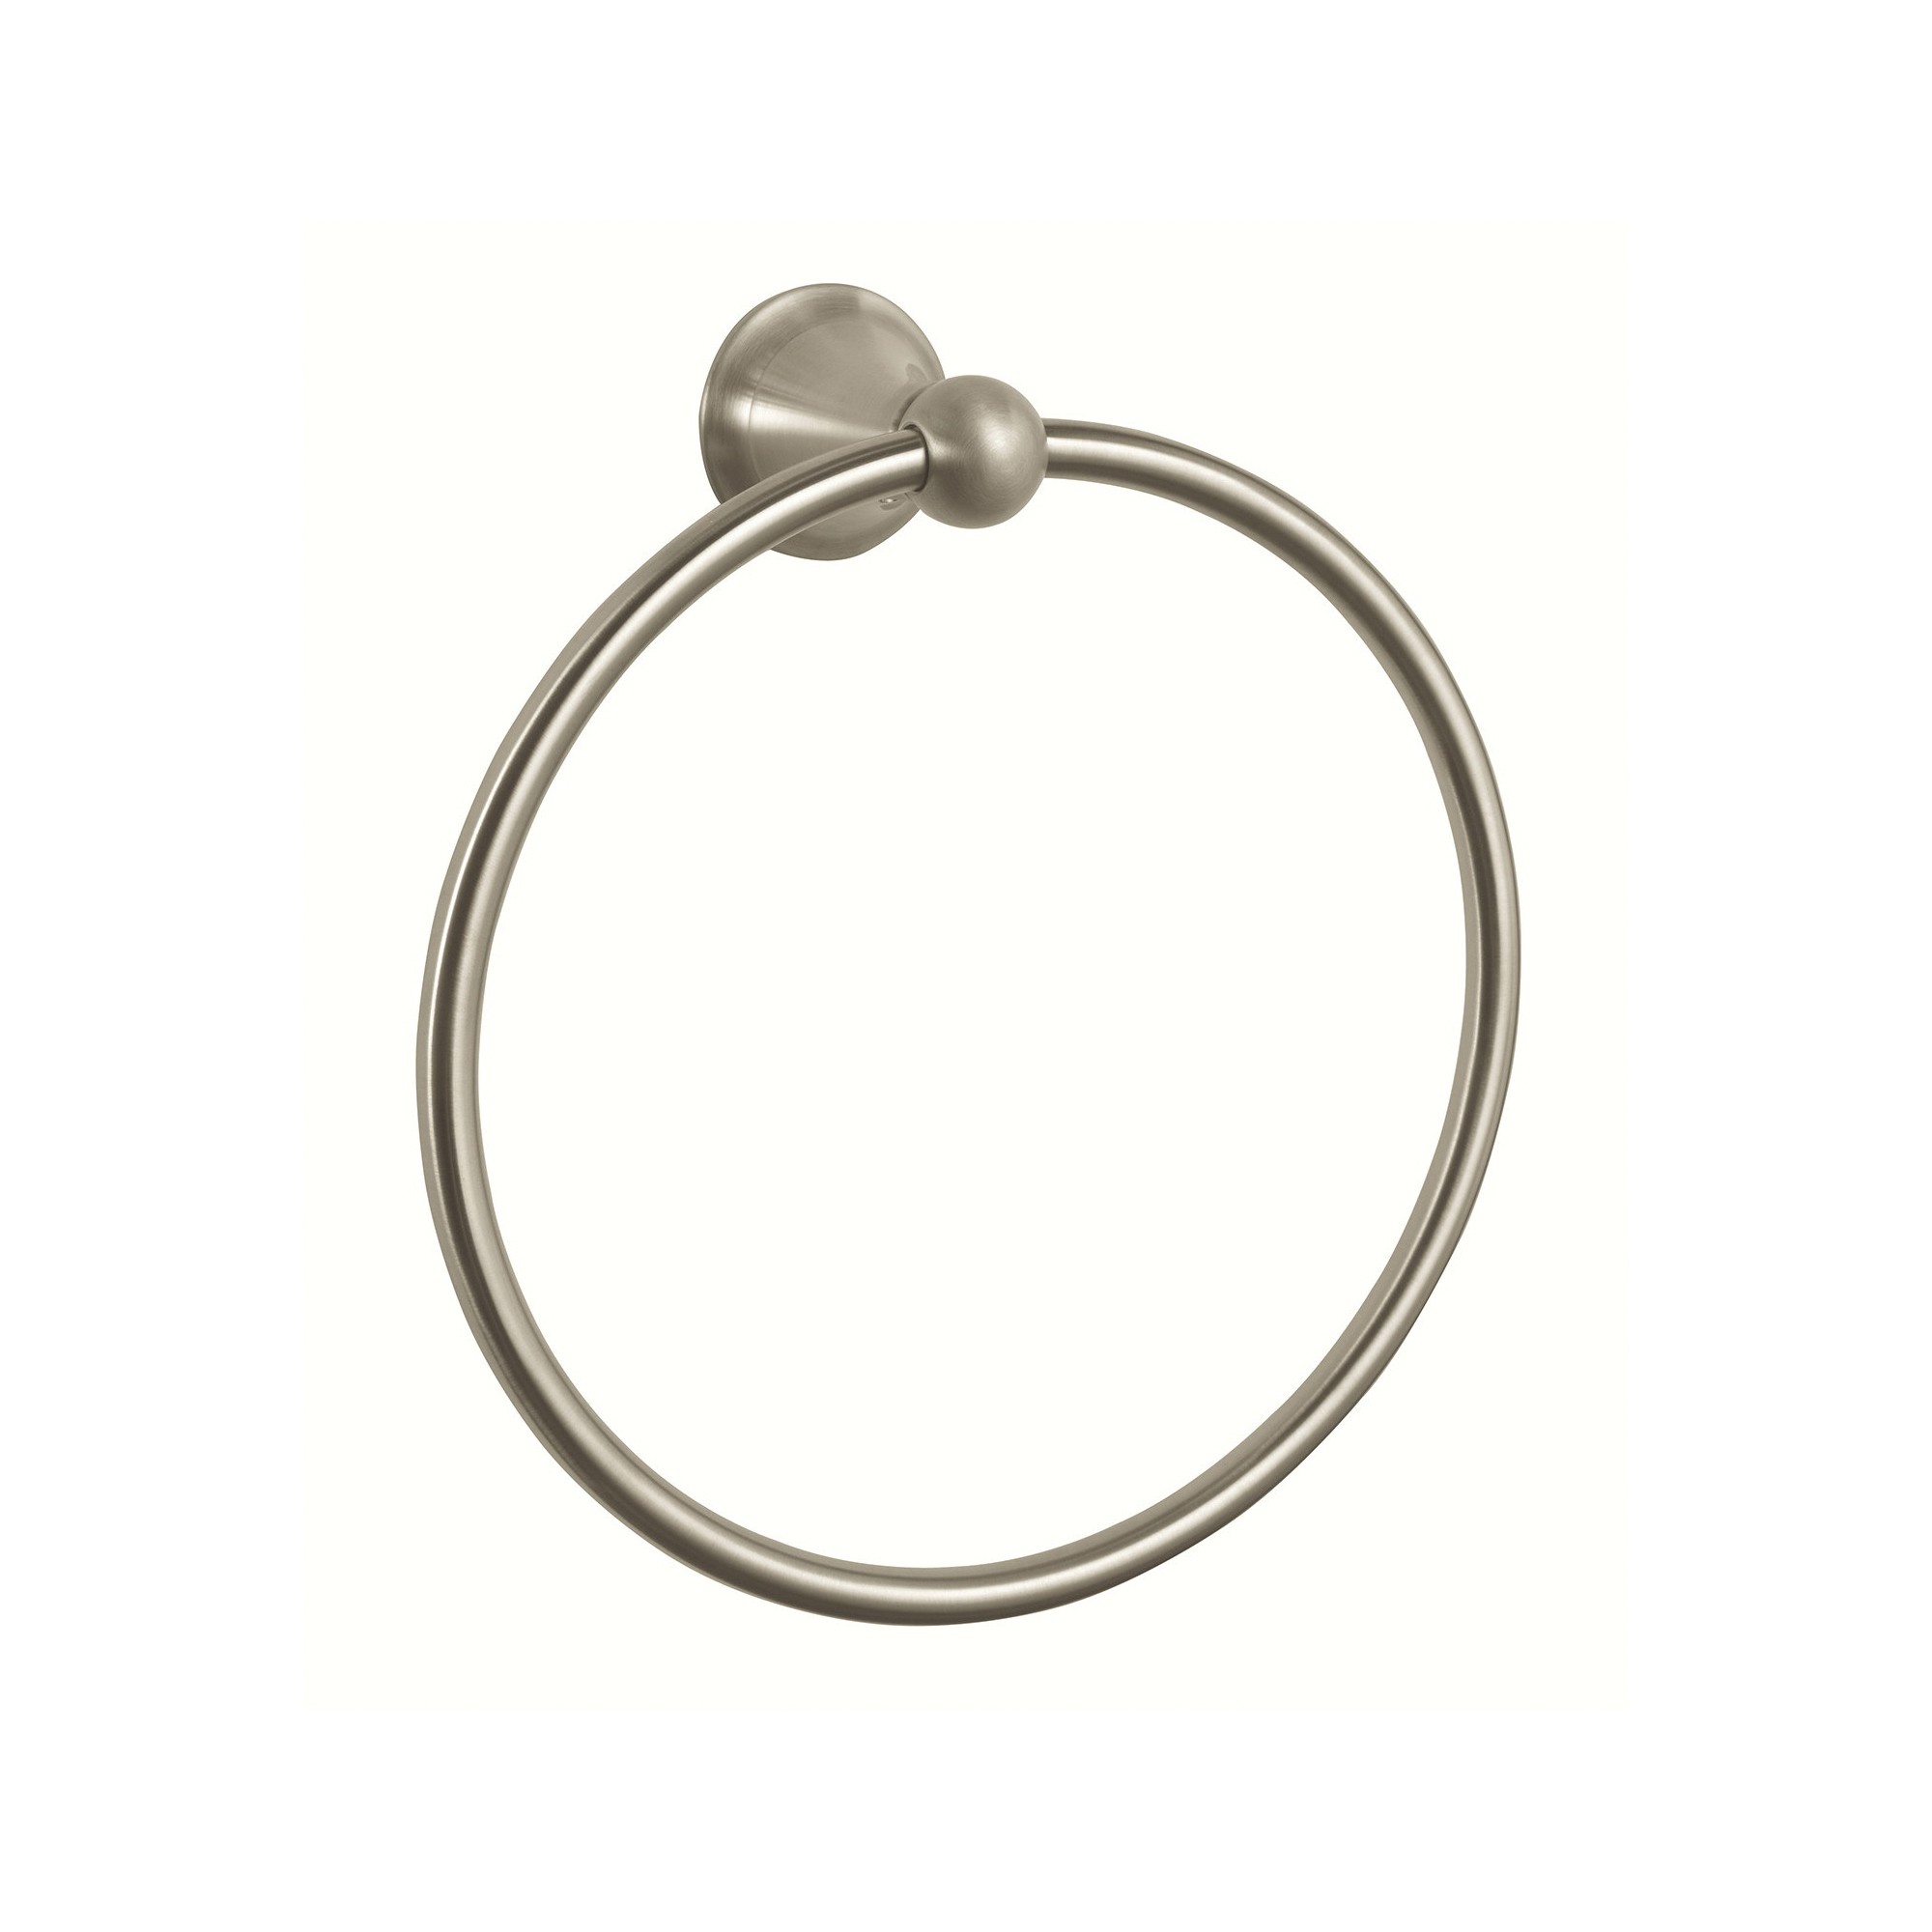 GROHE 40158EN0 Seabury Towel Ring, 7-7/8 in Dia Ring, 2-11/16 in OAD, Metal, Import